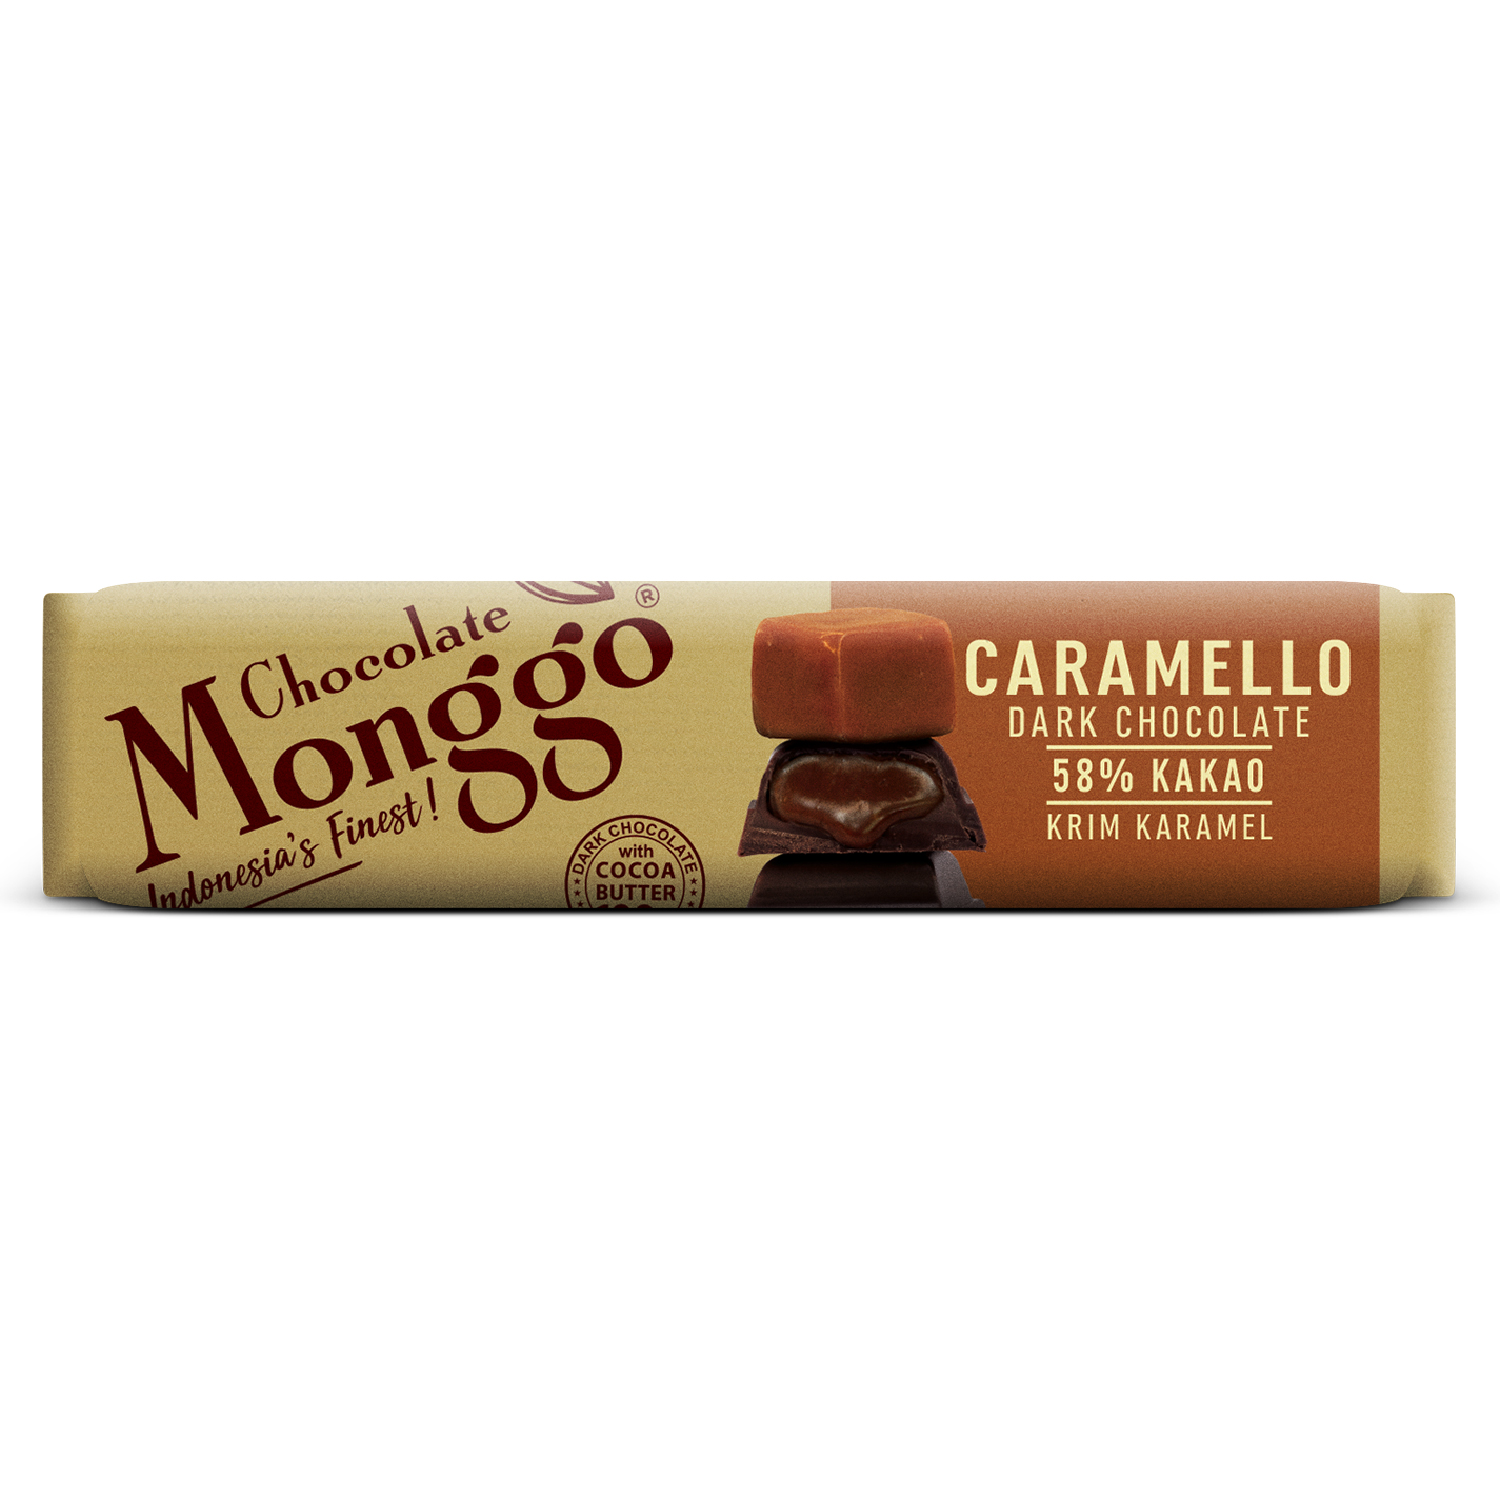 CHOCOLATE BAR WITH CARAMELLO